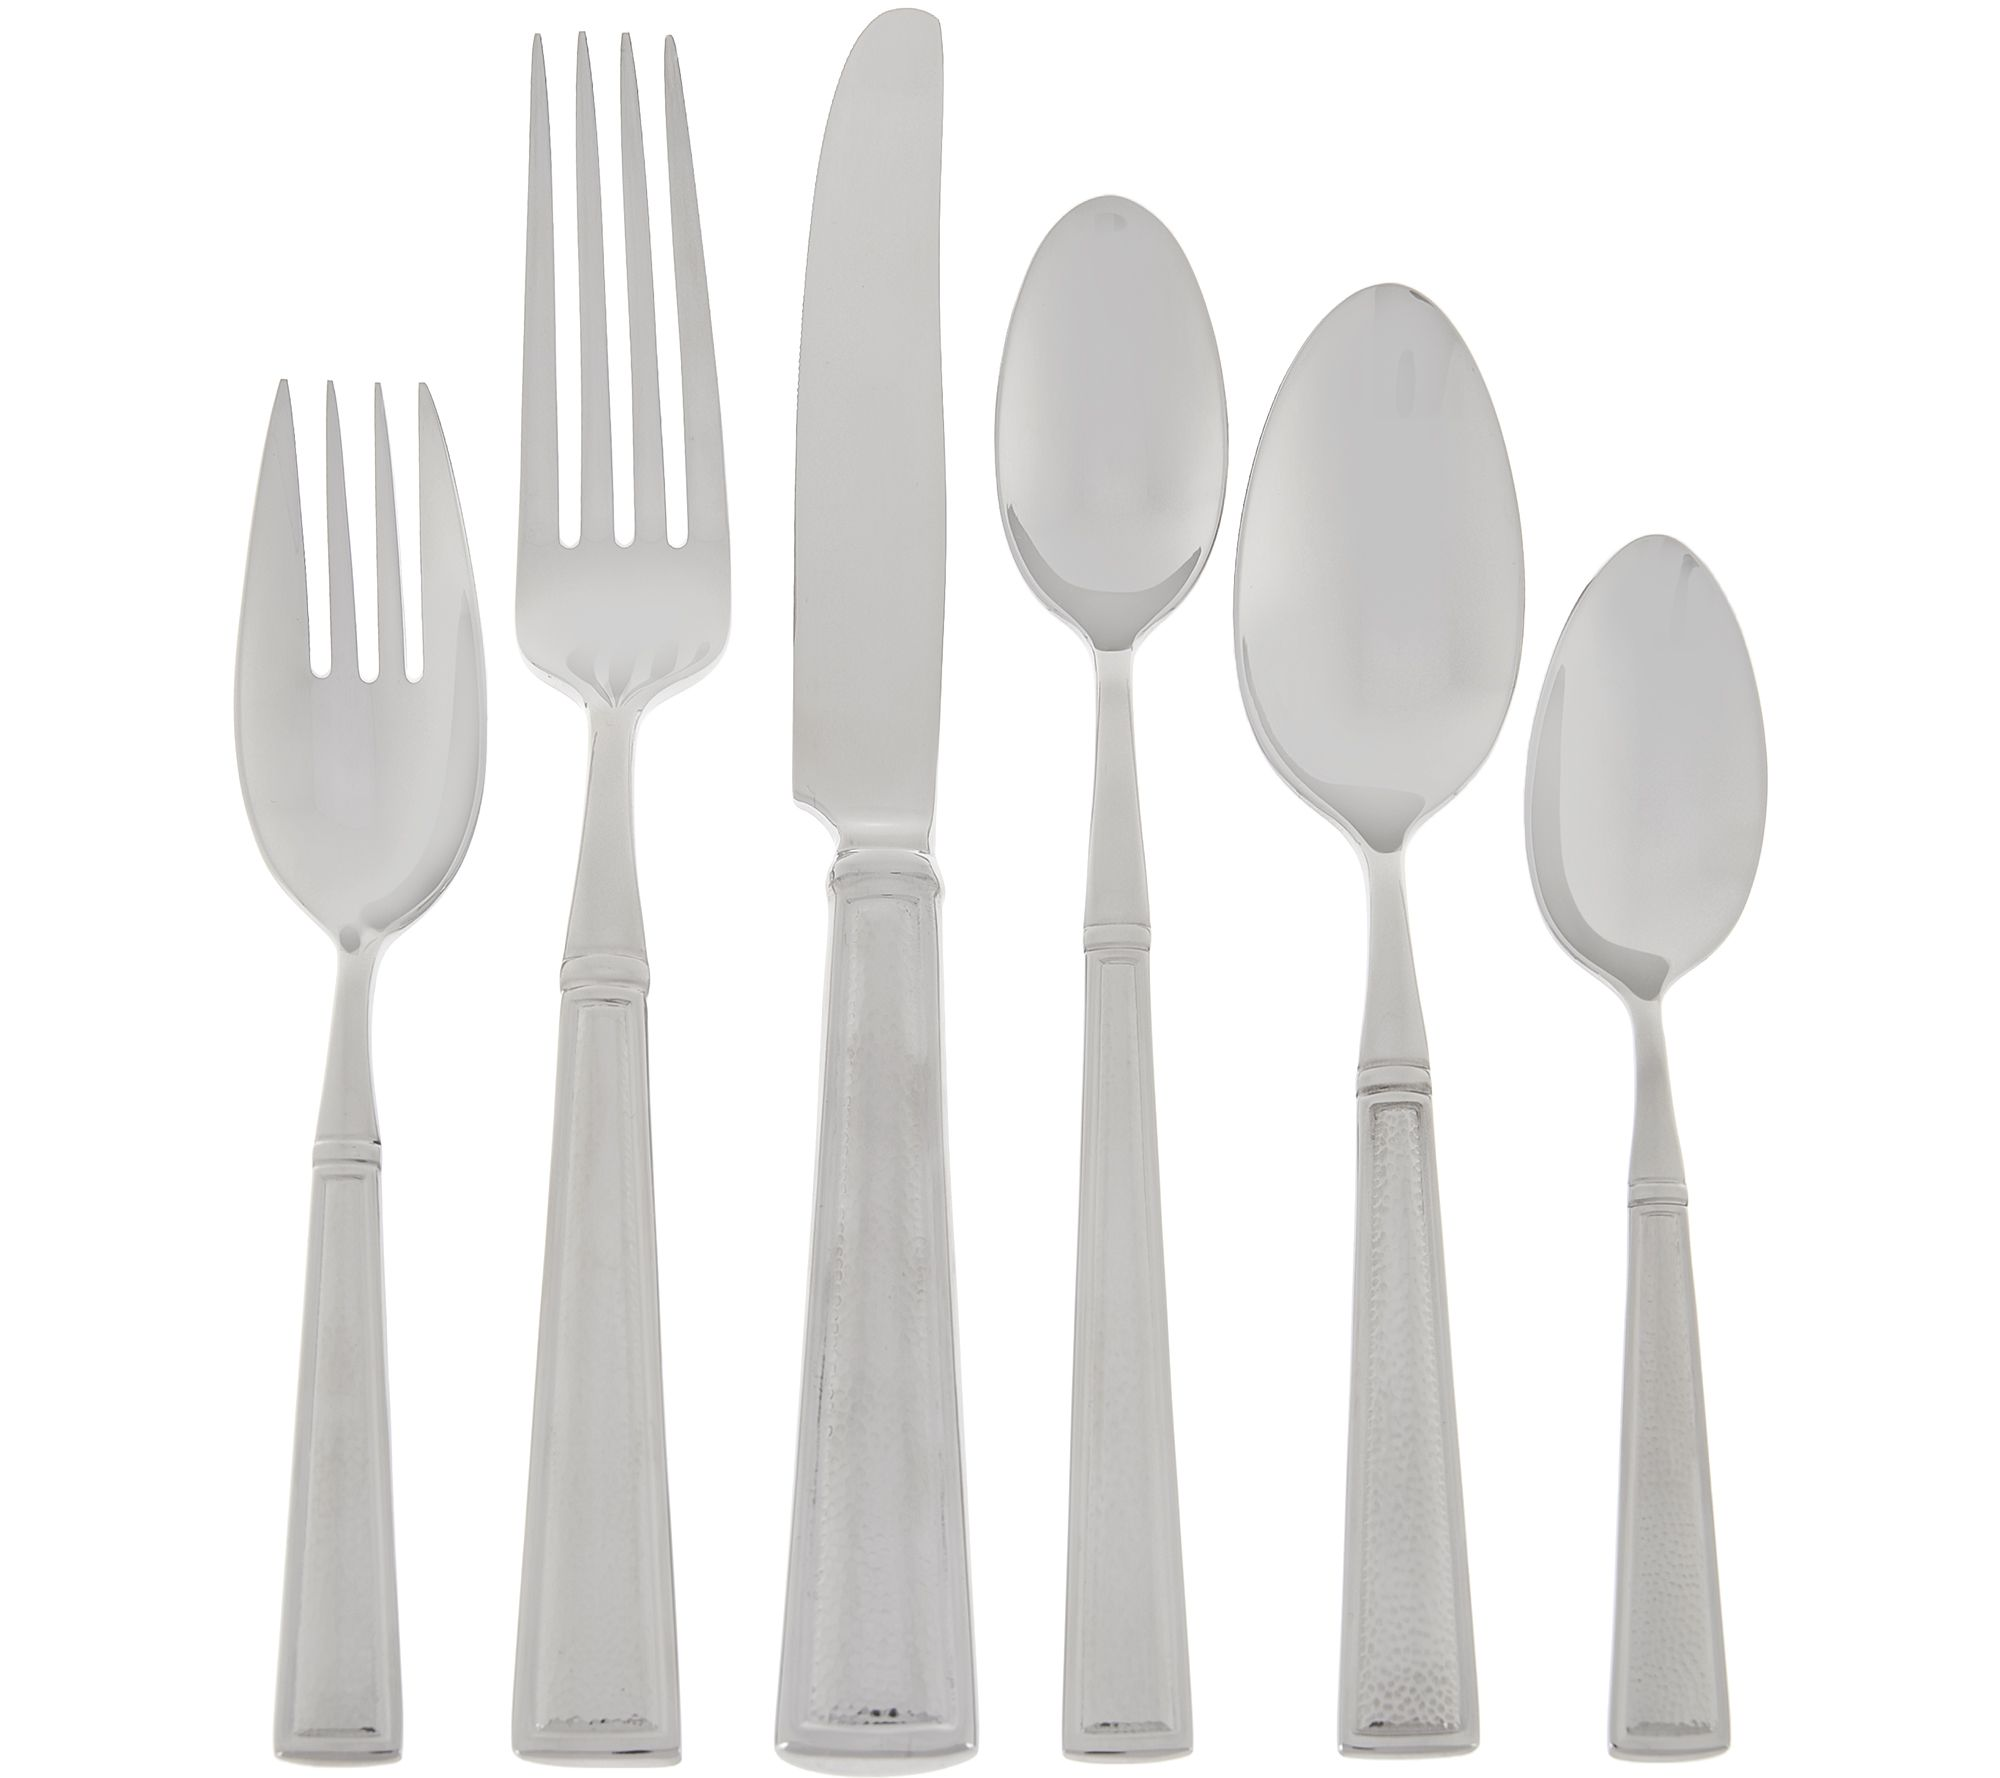 Best Deal On Silverware Lenox 18 10 Stainless Steel 80 Pc Service For 12 Flatware